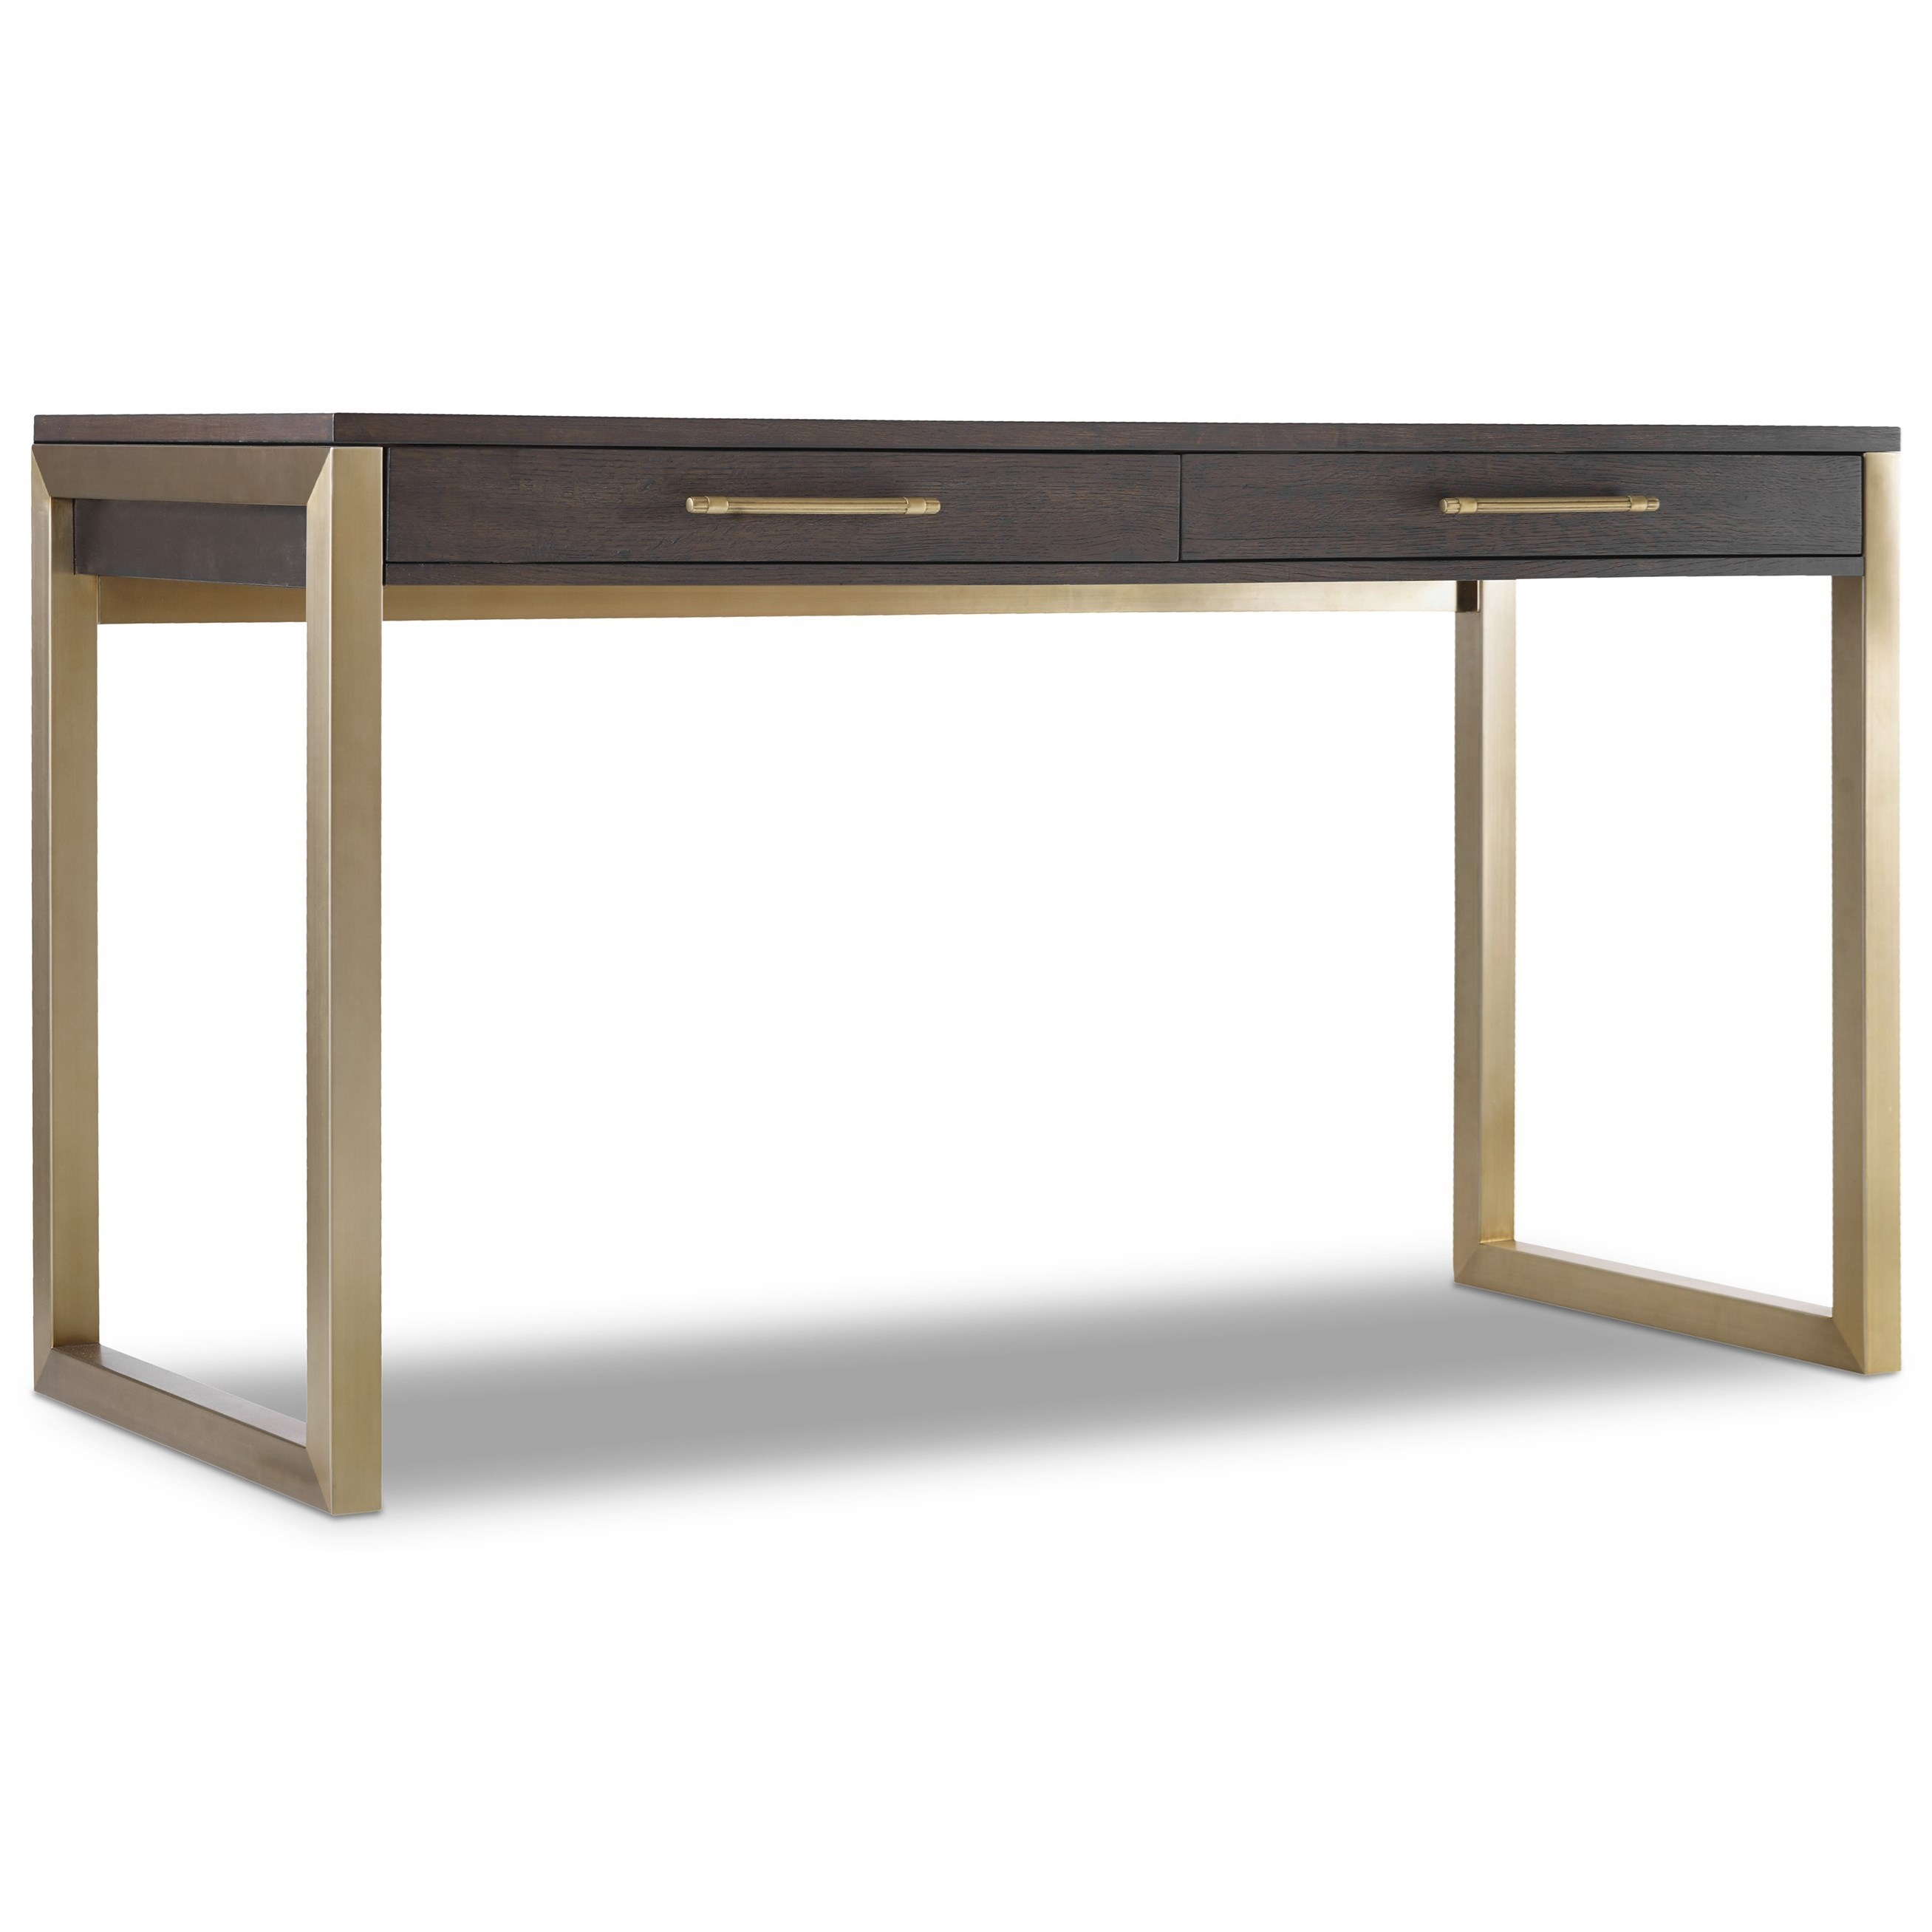 Marvelous Hooker Furniture Curata Tall Modern Wooden Writing Desk   Olindeu0027s  Furniture   Table Desks/Writing Desks